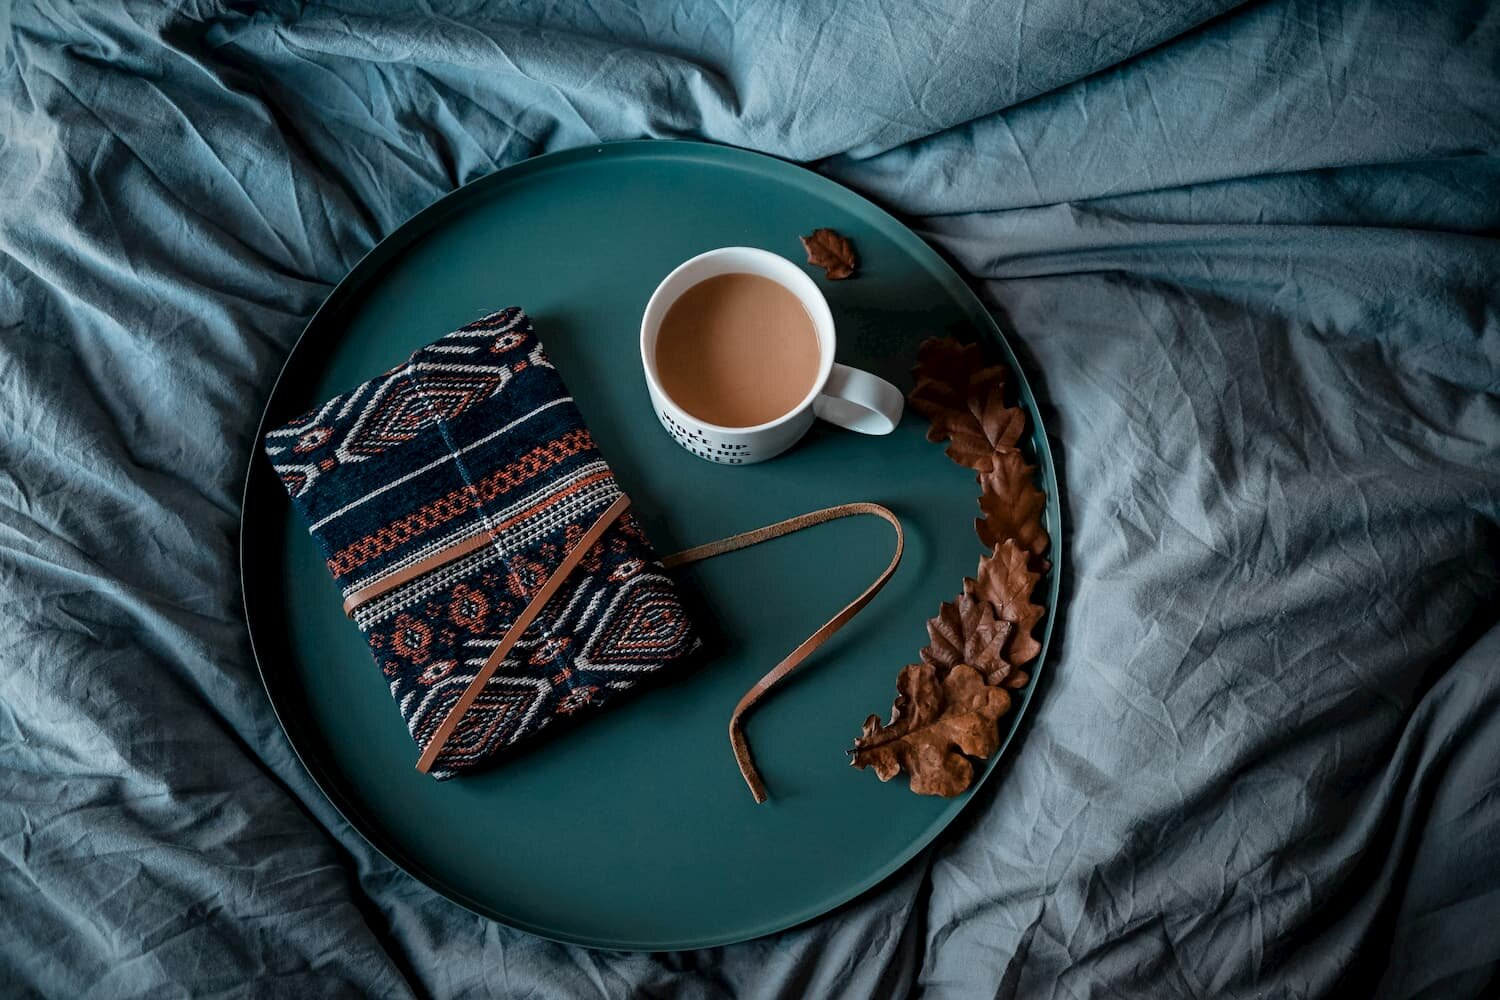 tray with tea and journal on bed credit unsplash